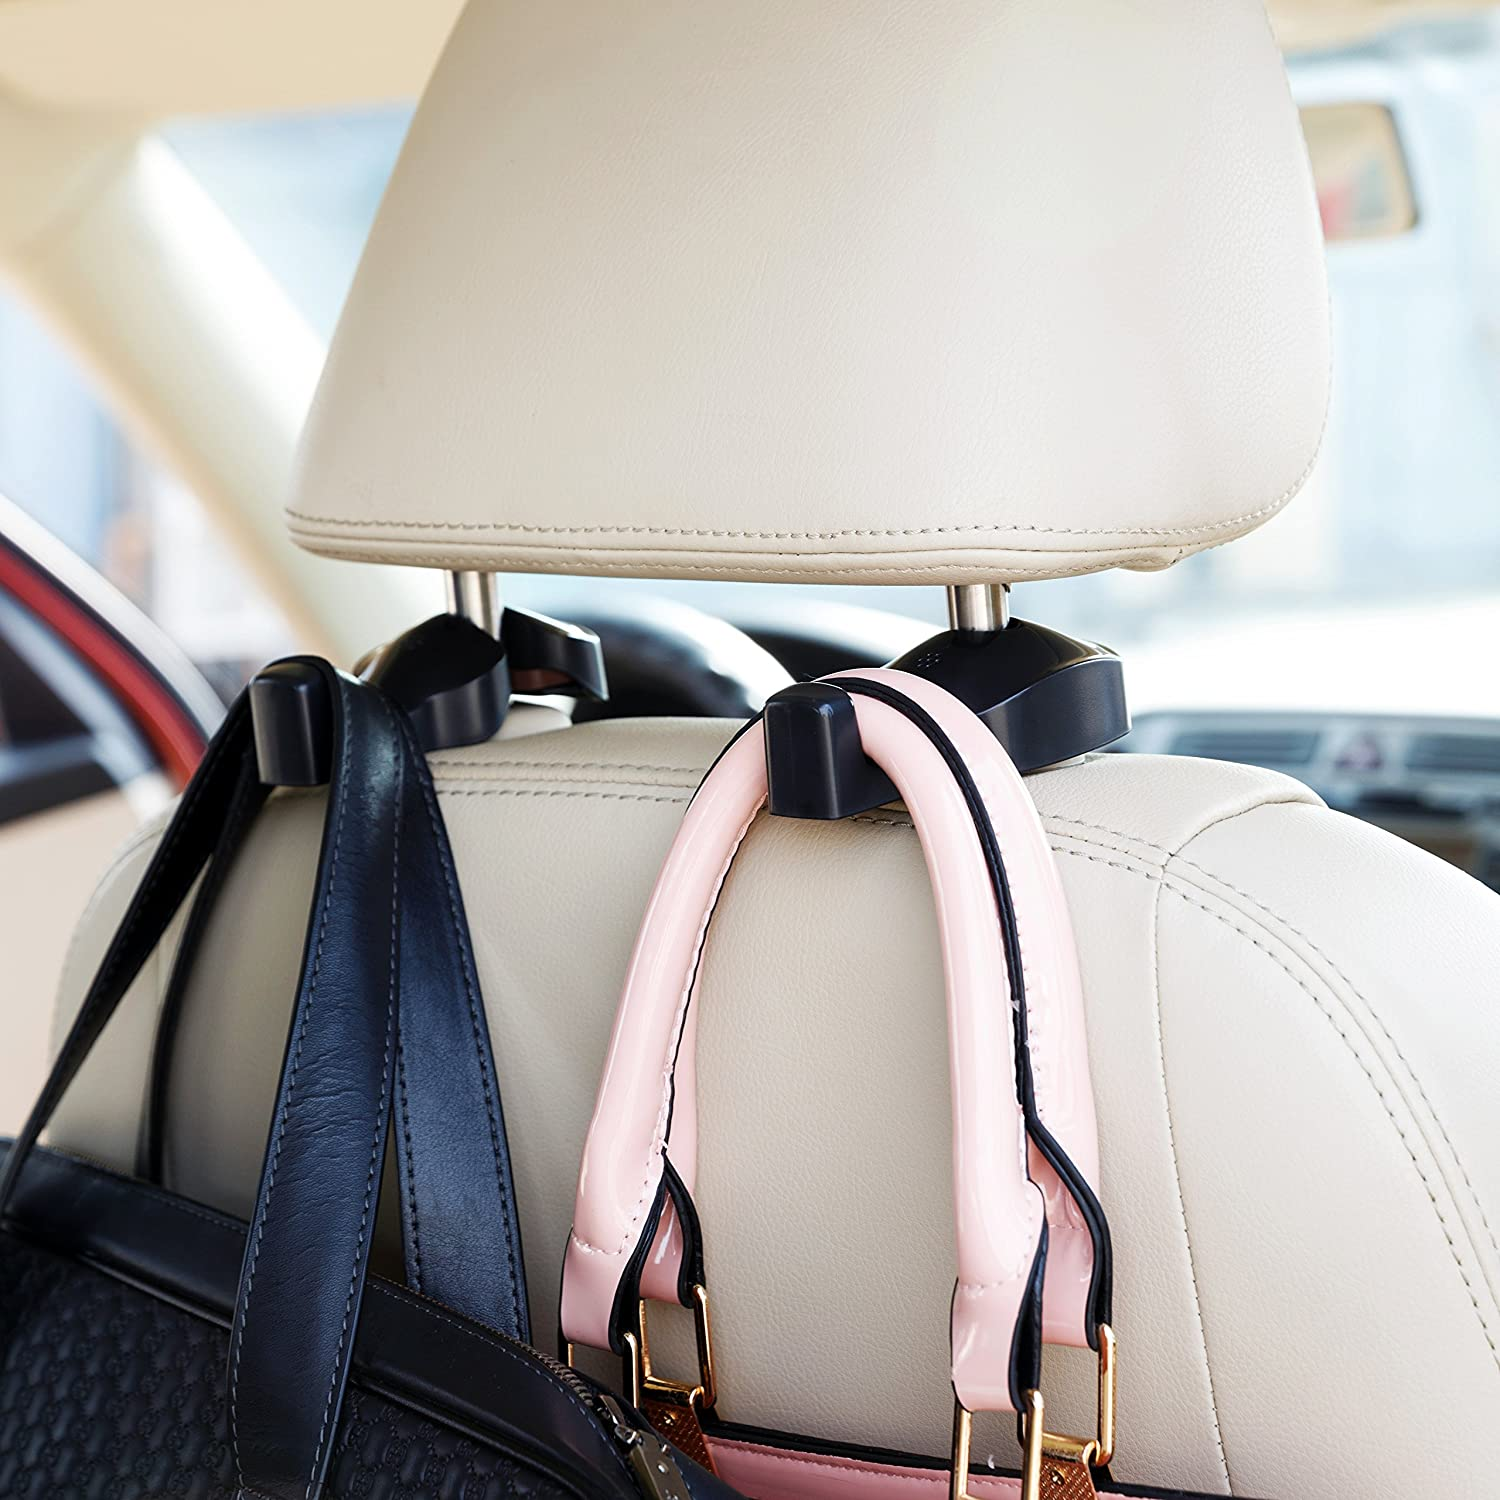 girly accessories that you can purchase for your car